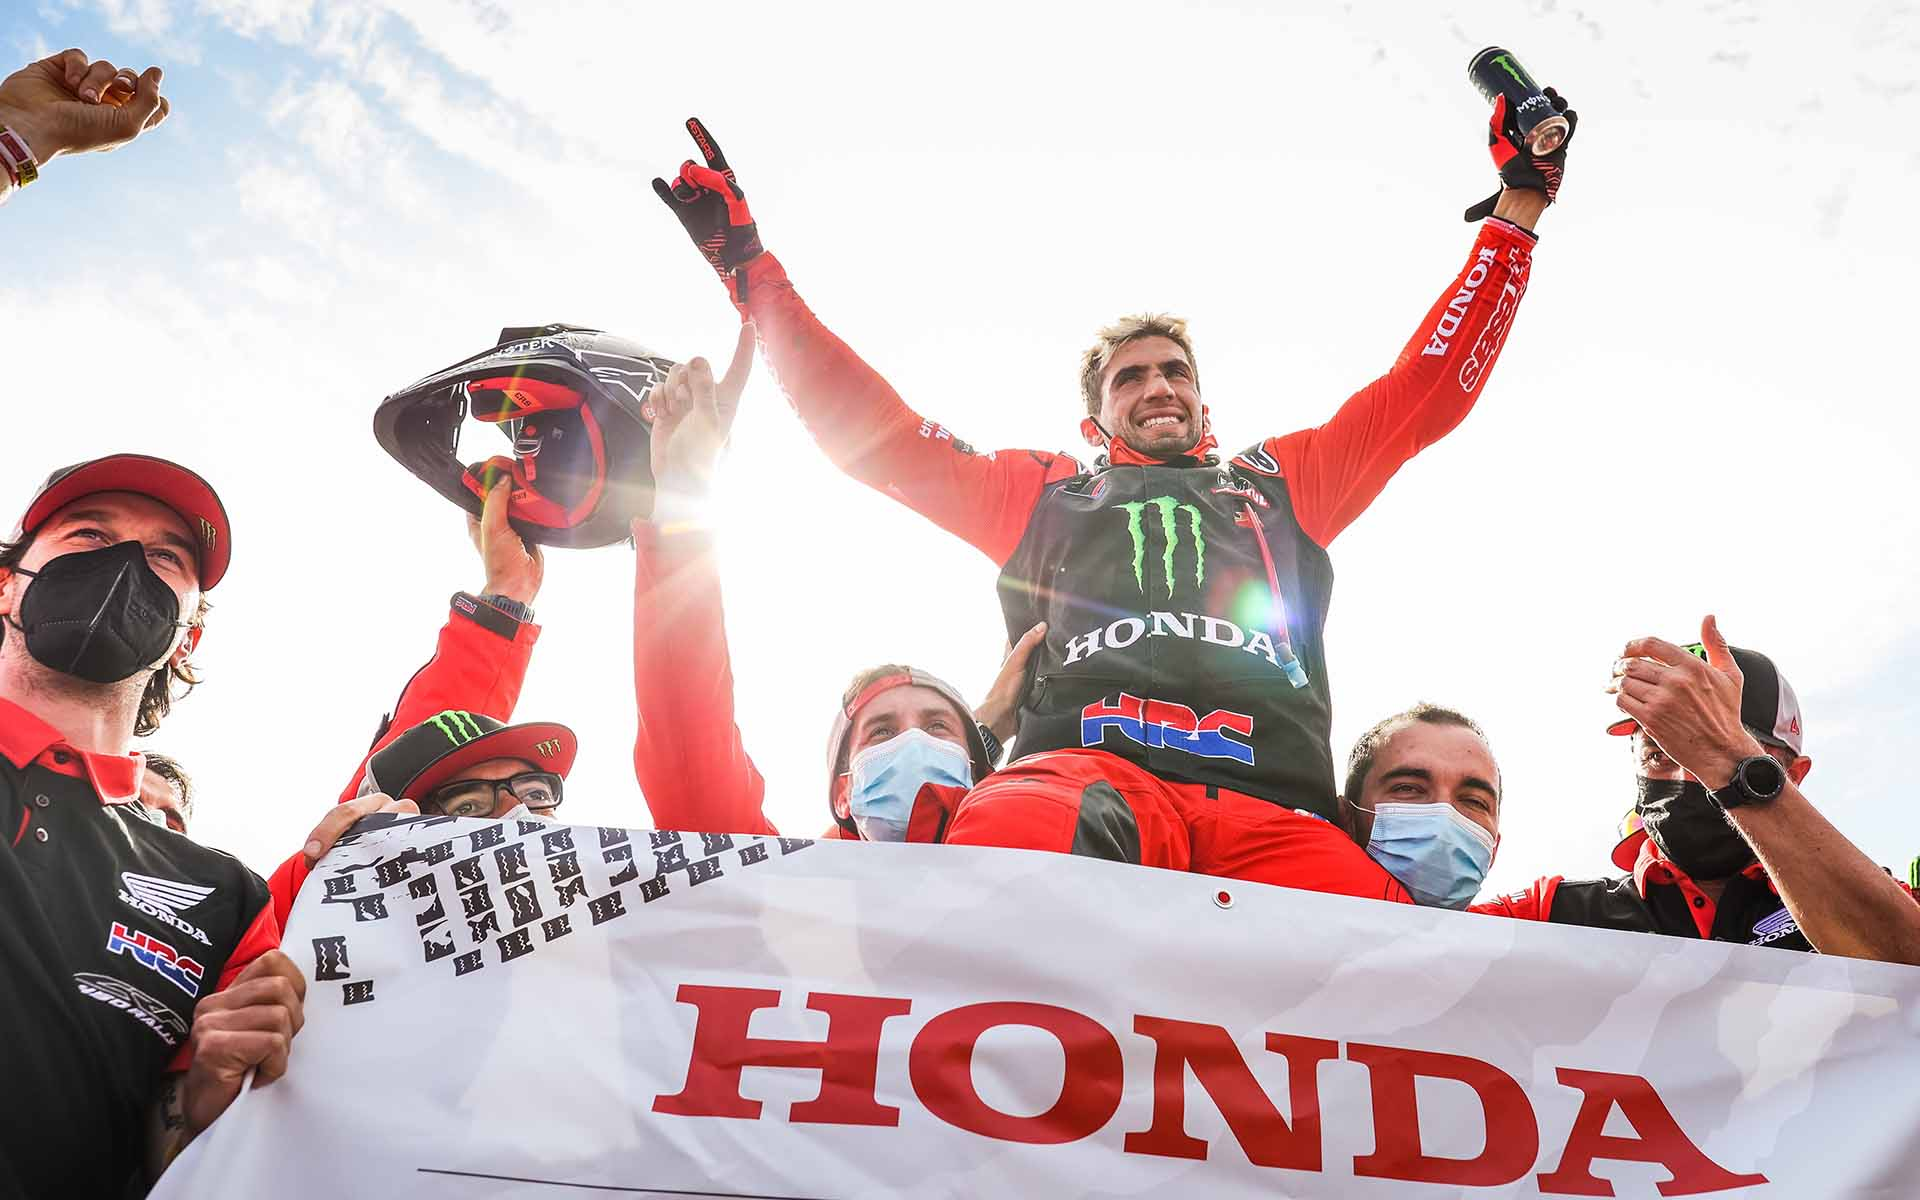 Jeddah (Saudi Arabia), 15/01/2021.- A handout photo made available by ASO of Kevin Benavides of Argentina, Honda, Monster Energy Honda Team 2021, celebrating winning the Bike section after the 12th and final stage of the Dakar 2021 between Yanbu and Jeddah, in Saudi Arabia, 15 January 2021. (Arabia Saudita) EFE/EPA/Antonin Vincent HANDOUT via ASO SHUTTERSTOCK OUT HANDOUT EDITORIAL USE ONLY/NO SALES/NO ARCHIVES